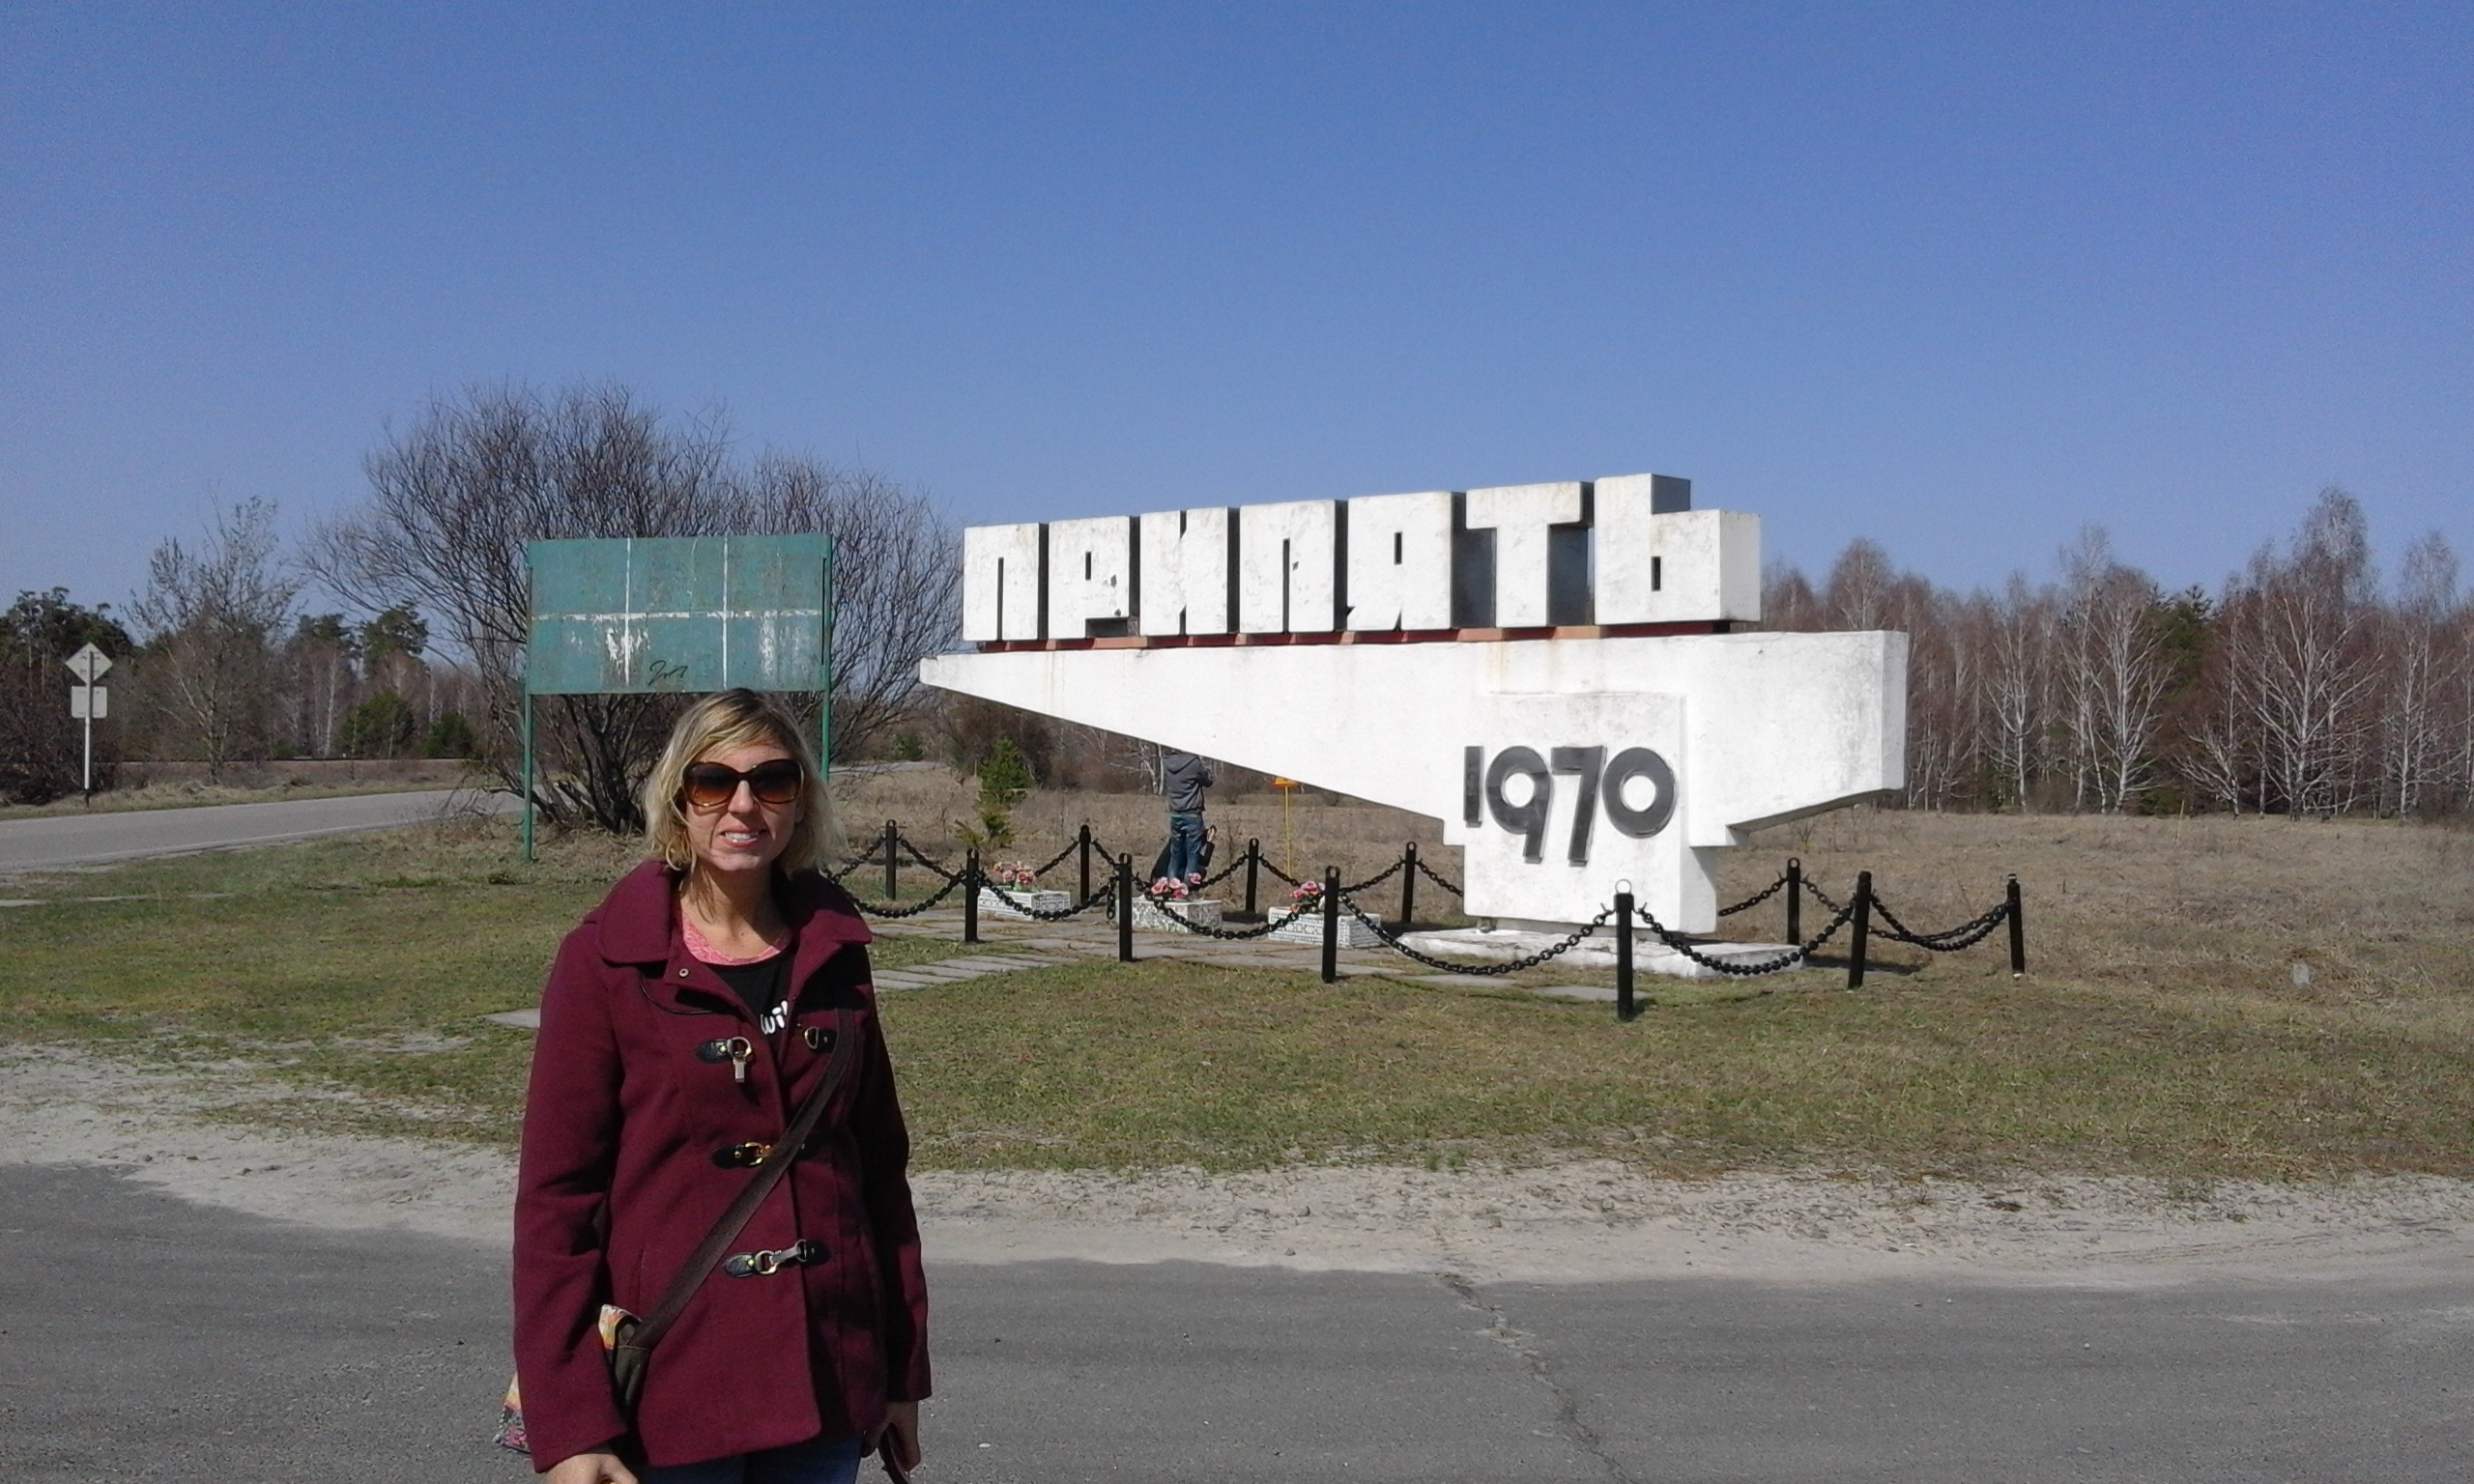 pripyat entrance, people only had a few years to enjoy this dream town